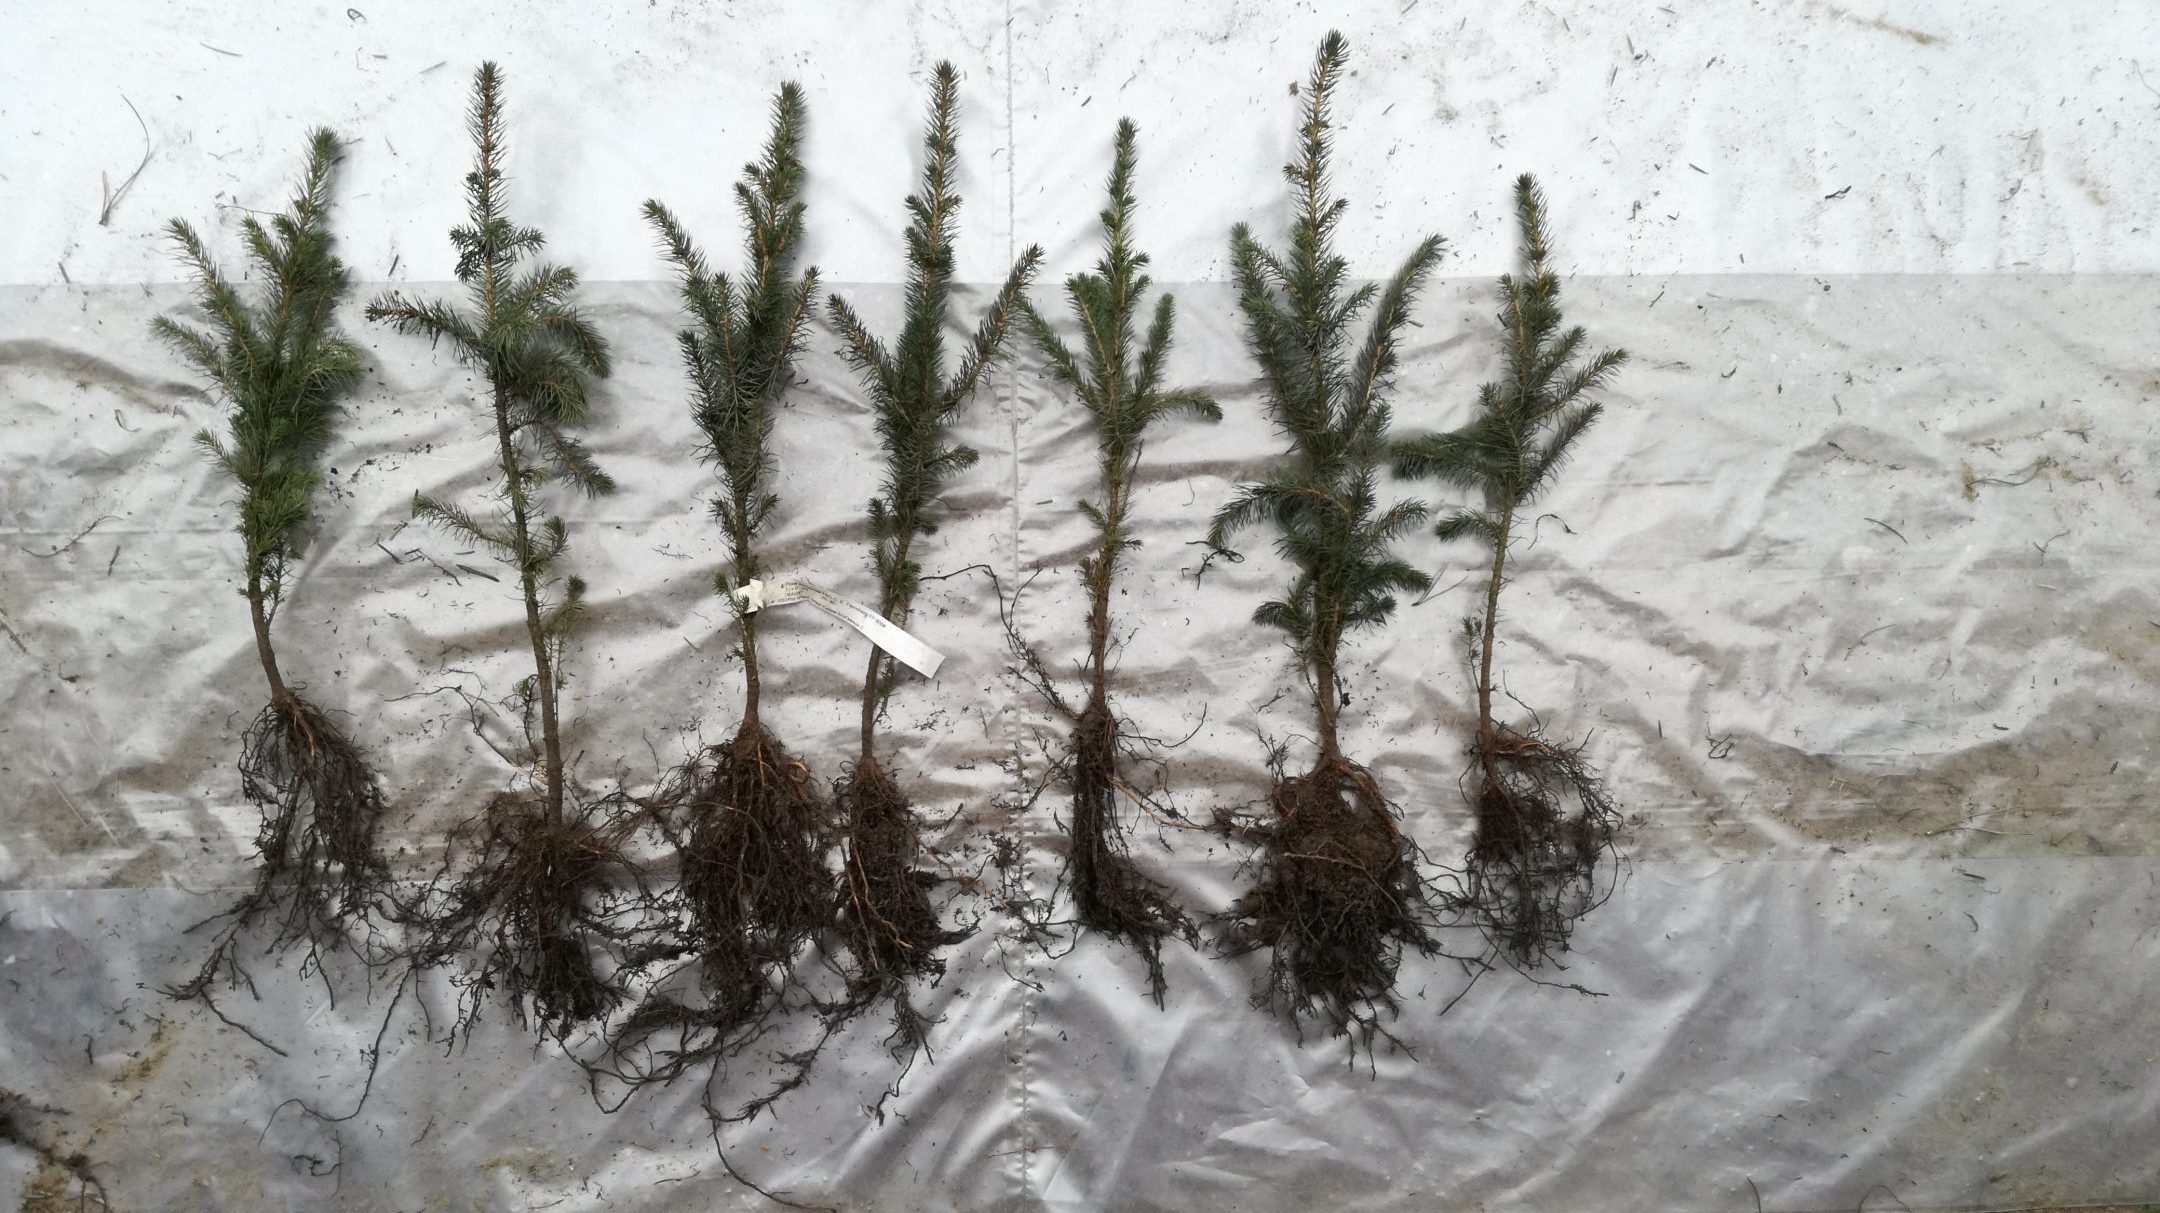 Picea sitchensis plants 2+1